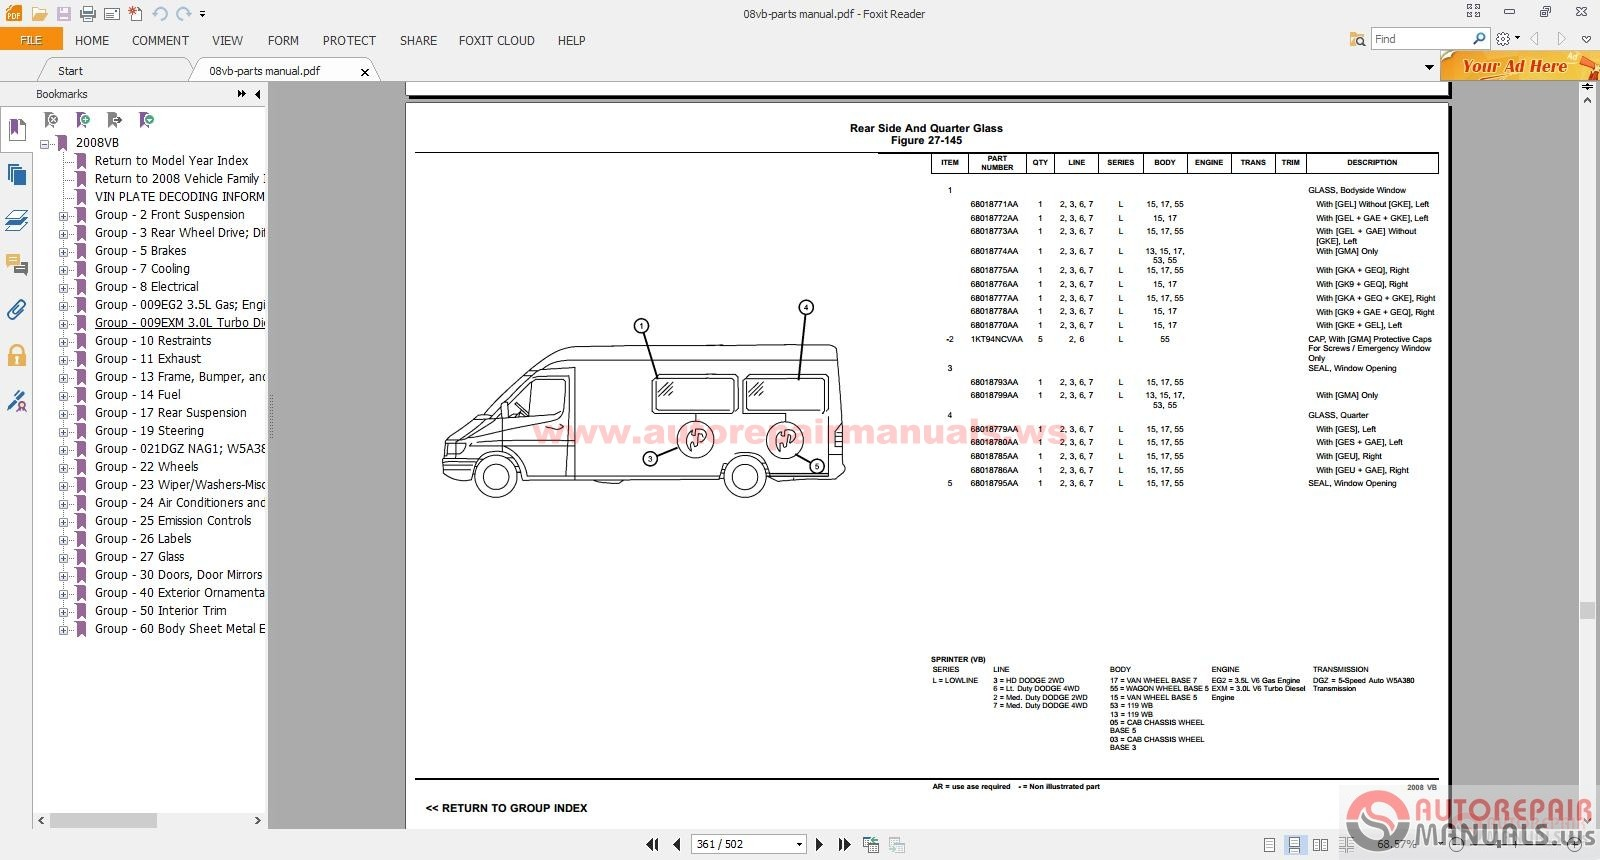 Mercedes_Sprinter_Service_Manuals_Part_Manual_Operator_Manual_2003 20114 mercedes sprinter service manuals & part manual & operator manual mercedes sprinter wiring diagram pdf at panicattacktreatment.co